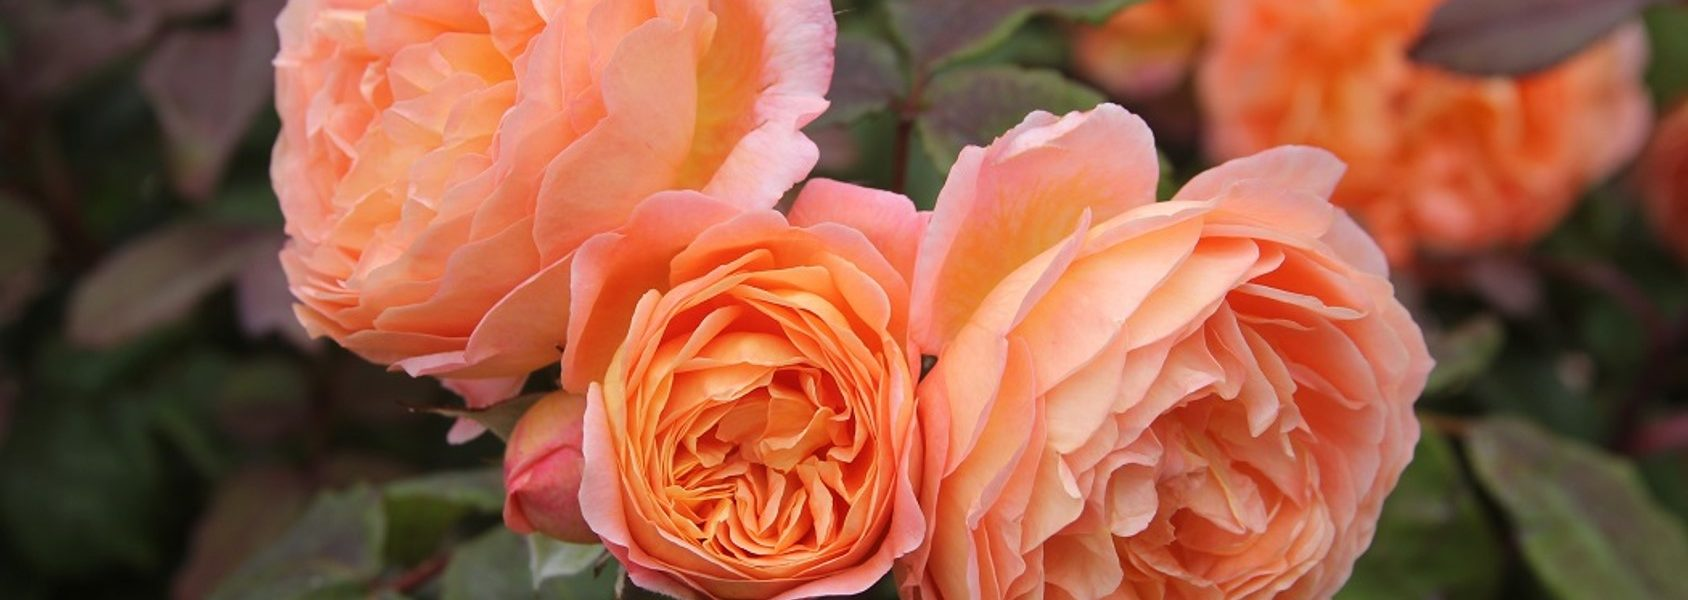 lady emma hamilton rose review the right roses score best top garden store david austin english roses rose products rose rating the right leap rose food fertilizer